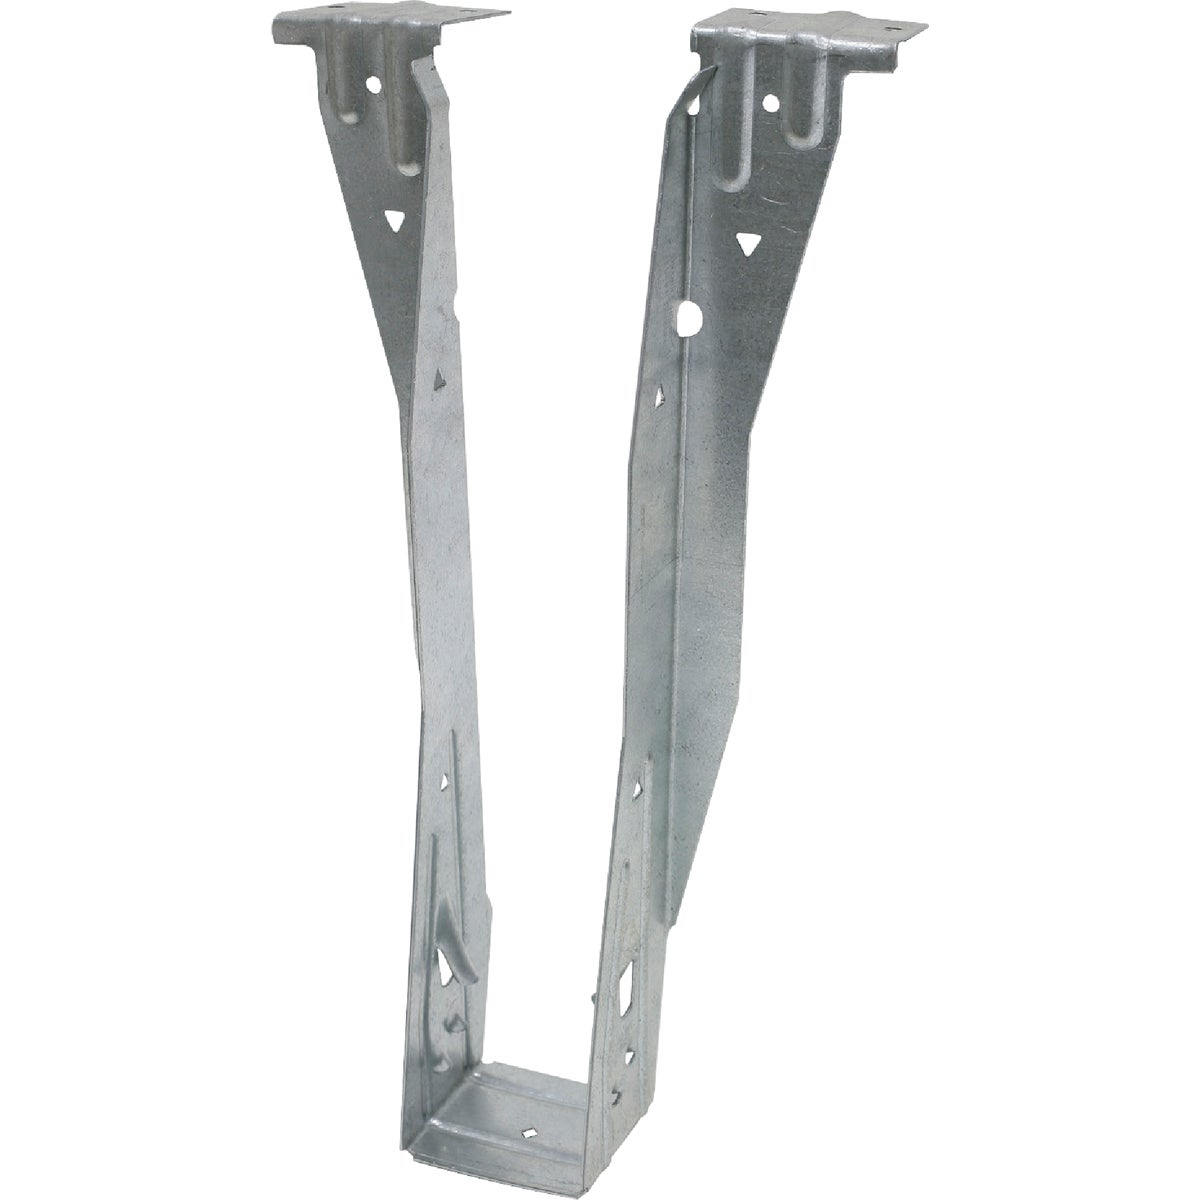 TOP FLANGE HANGER - ITS2.06/11.88 by Simpson Strong Tie